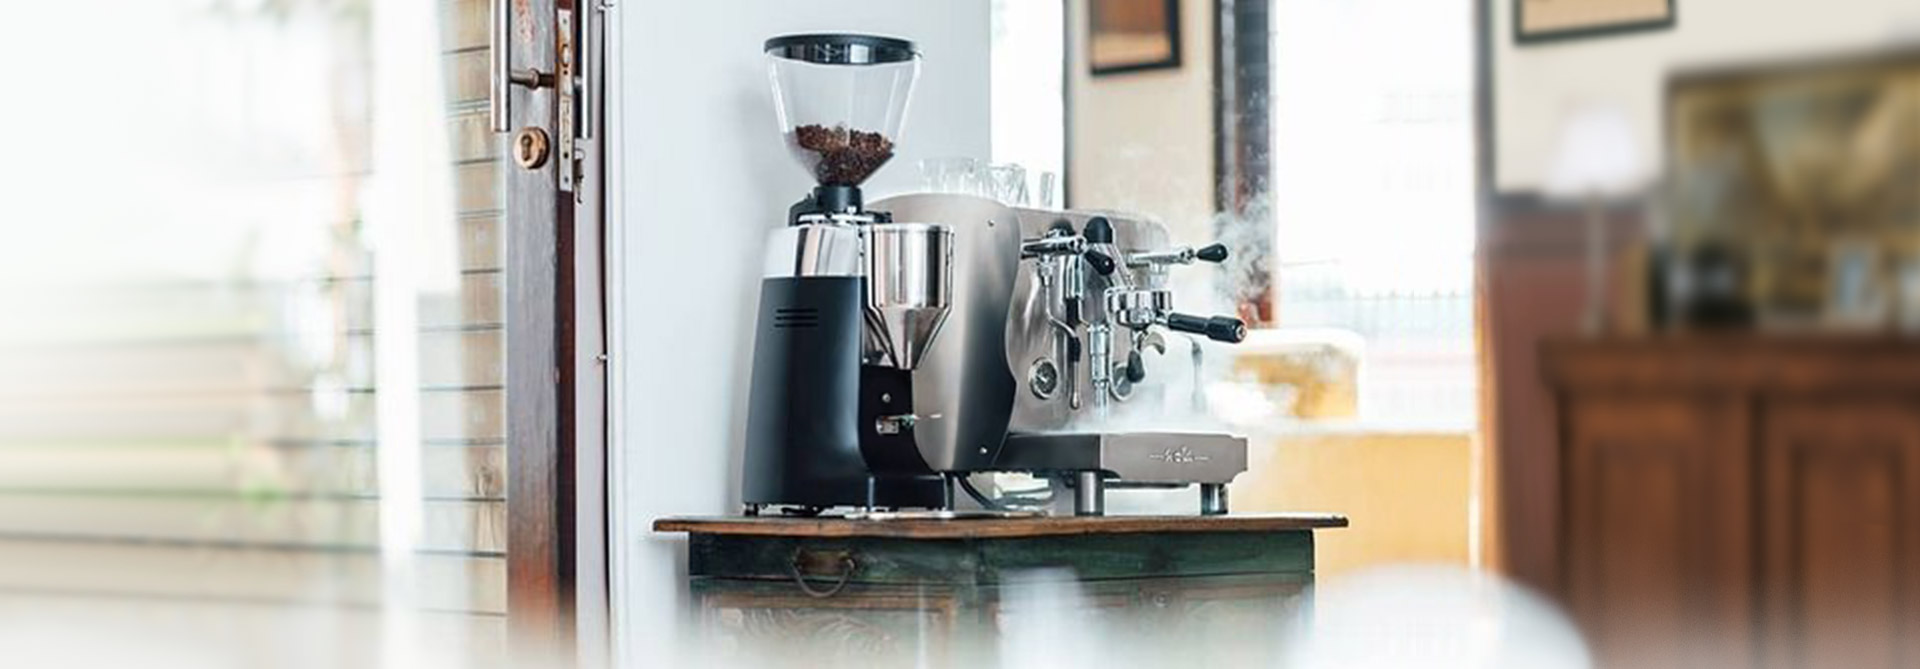 Nota-1-group-E61-home-Orchestrale-coffee-machine-04